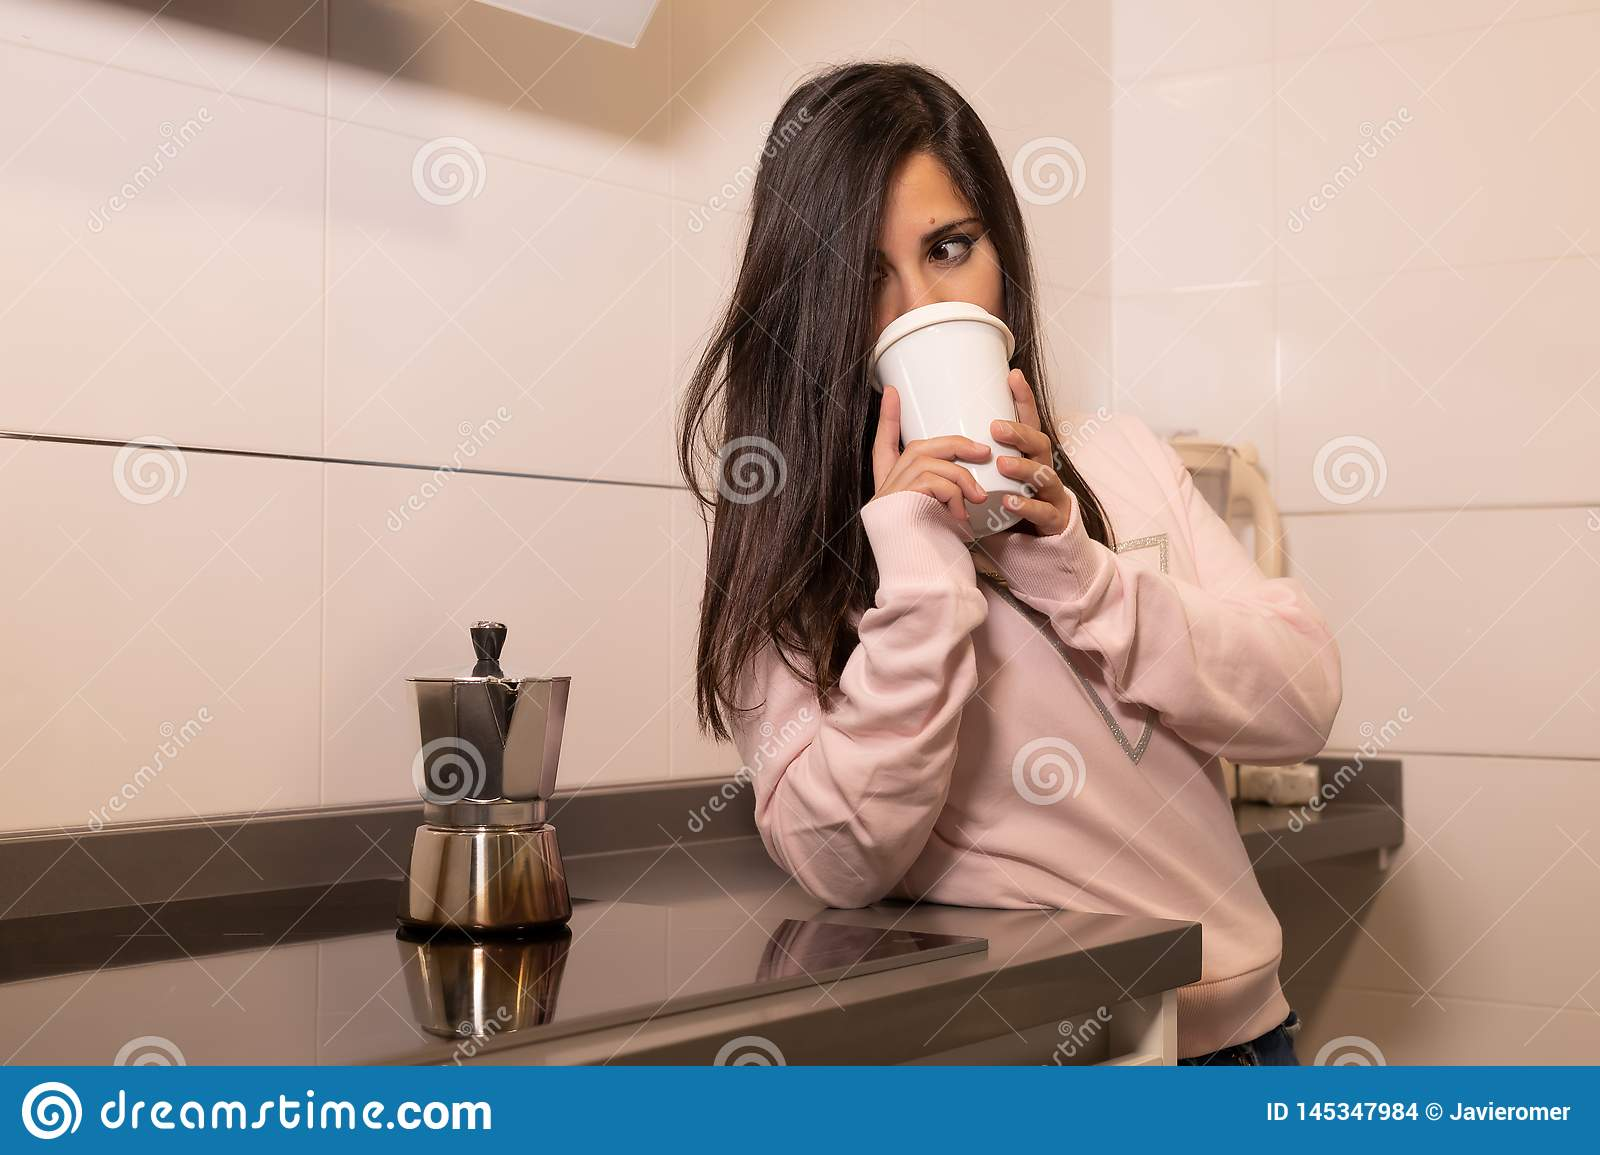 Girl drinking coffee in her kitchen